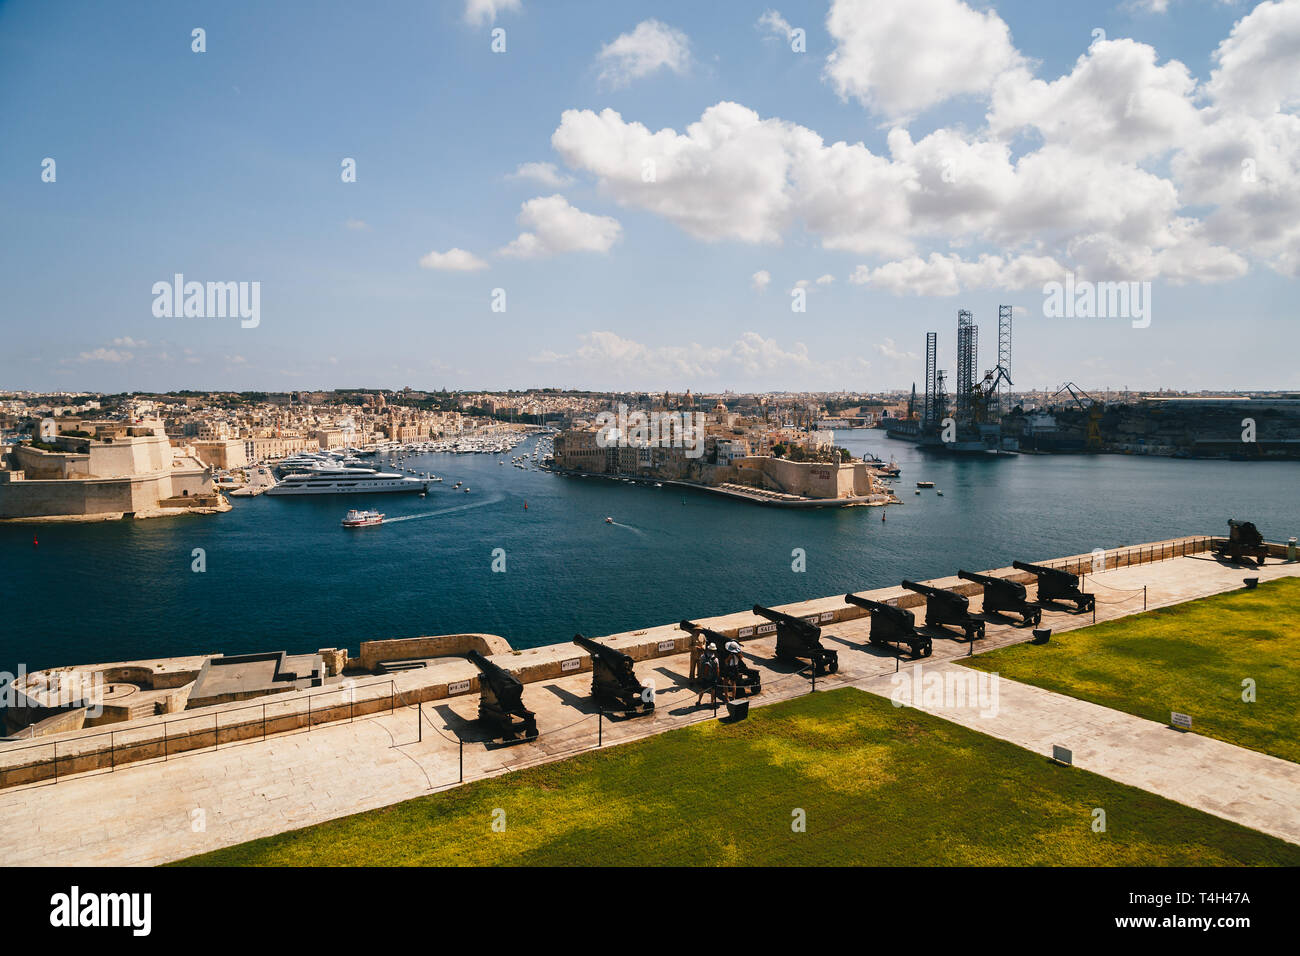 VALLETTA, MALTA - SEPTEMBER, 15 2018: Guns, cannons at the Saluting Battery in Upper Barrakka Gardens in Valletta, Malta with a commanding view of the - Stock Image